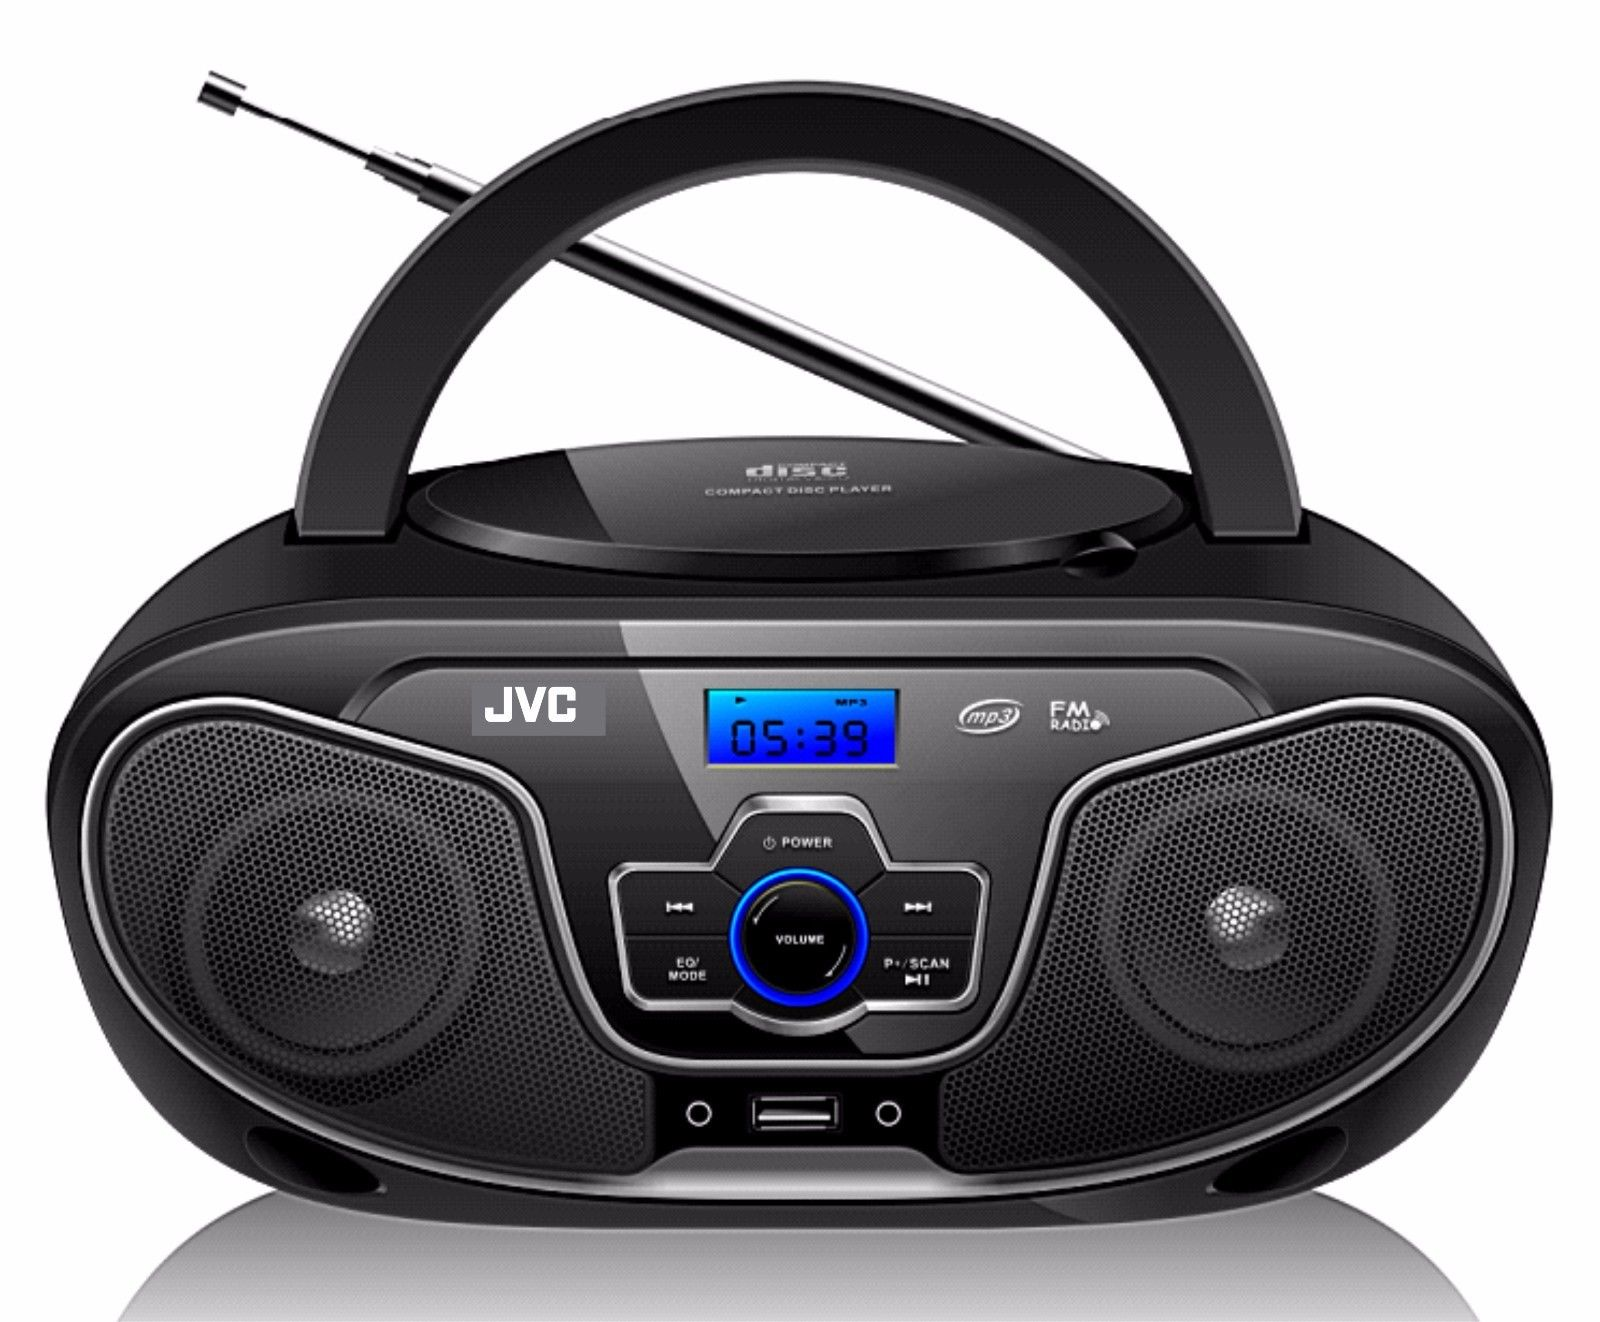 jvc jvc rd n327 bluetooth portable radio and cd player. Black Bedroom Furniture Sets. Home Design Ideas